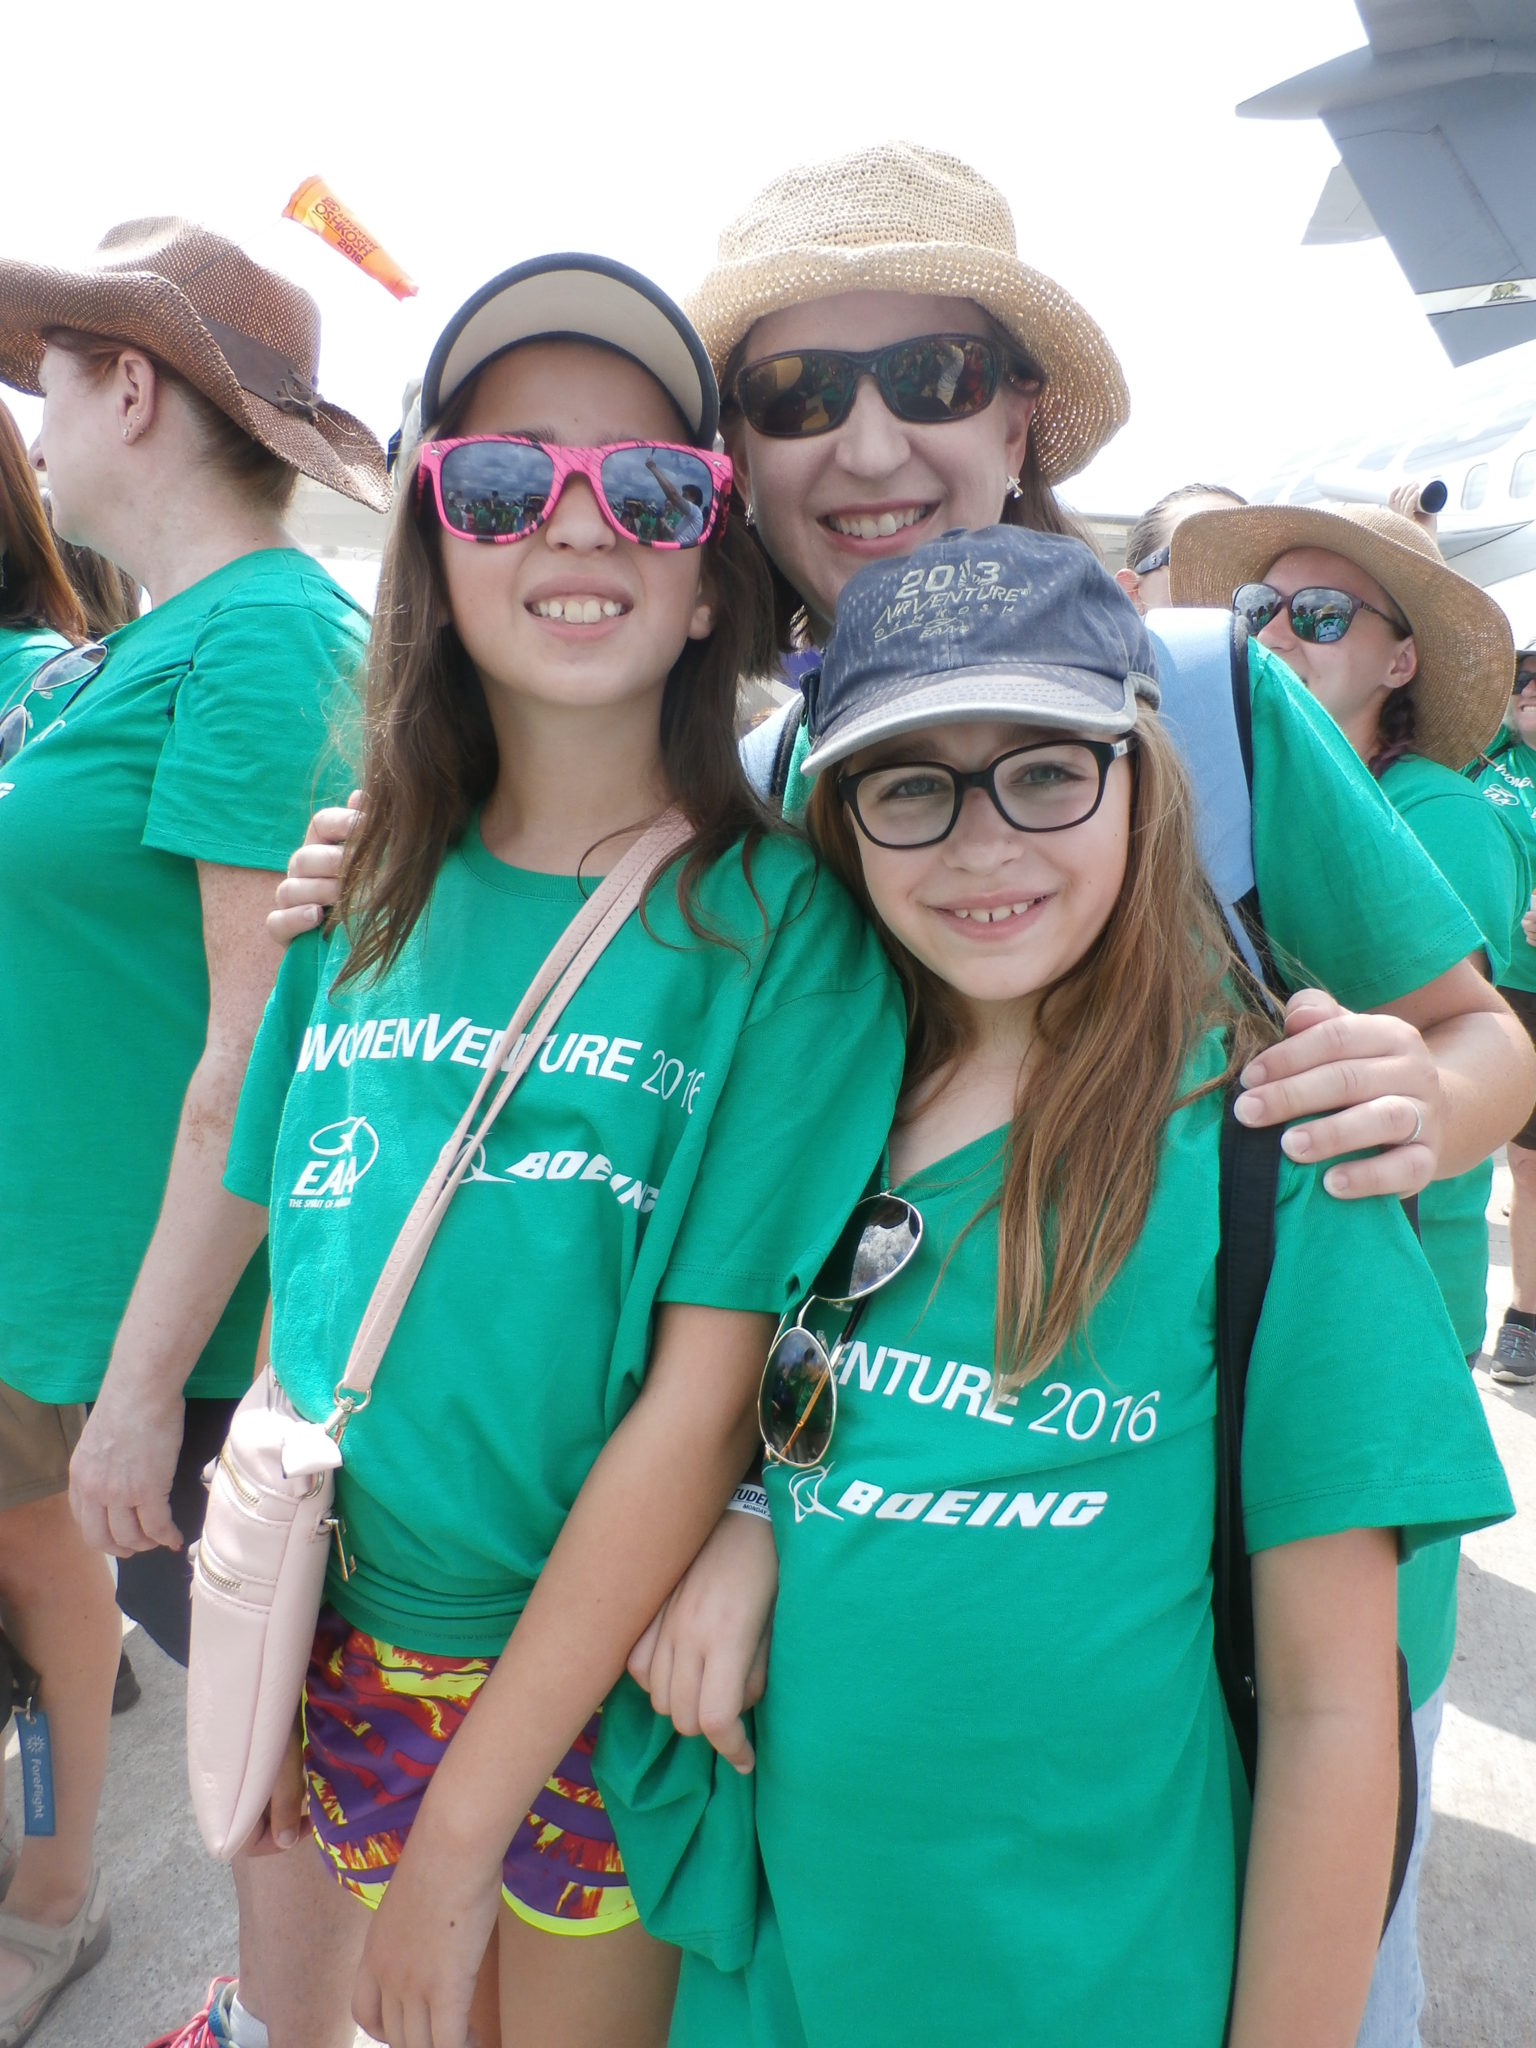 Mother and daughters join over 1,000 others to celebrate women in aviation. Image: Kathryn Creedy